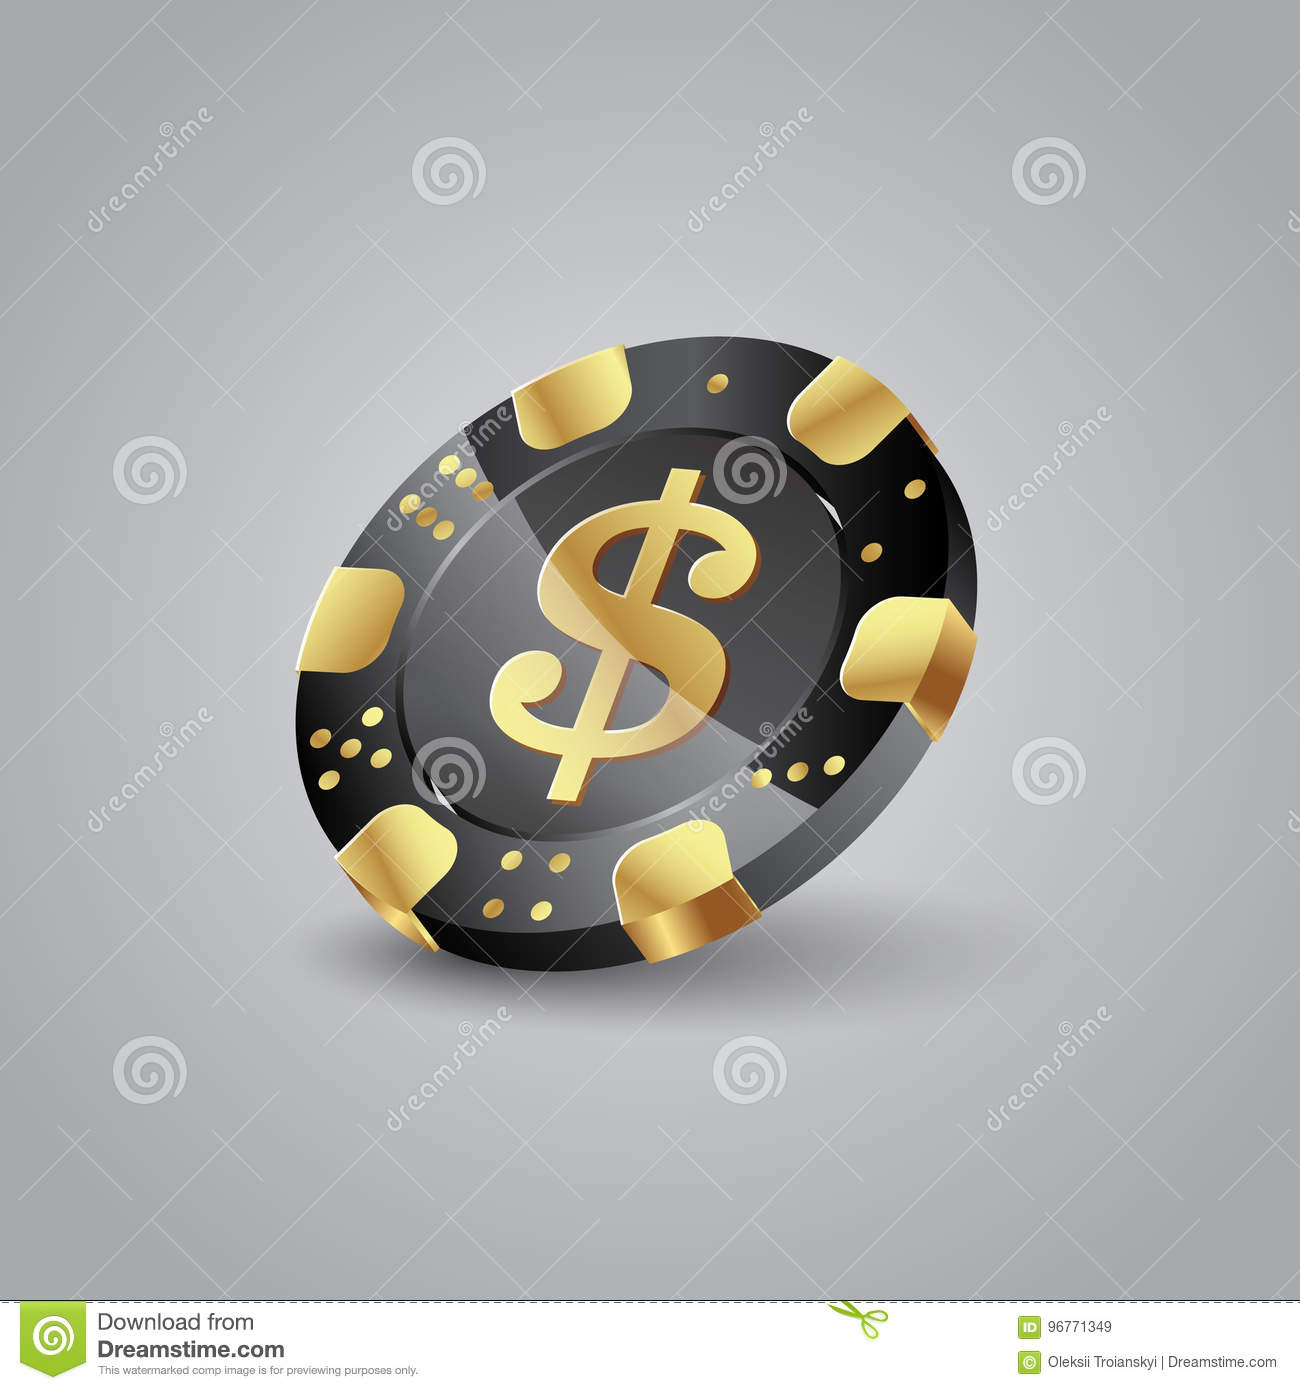 Realistic black and gold chip. Poker chip with a dollar symbol.